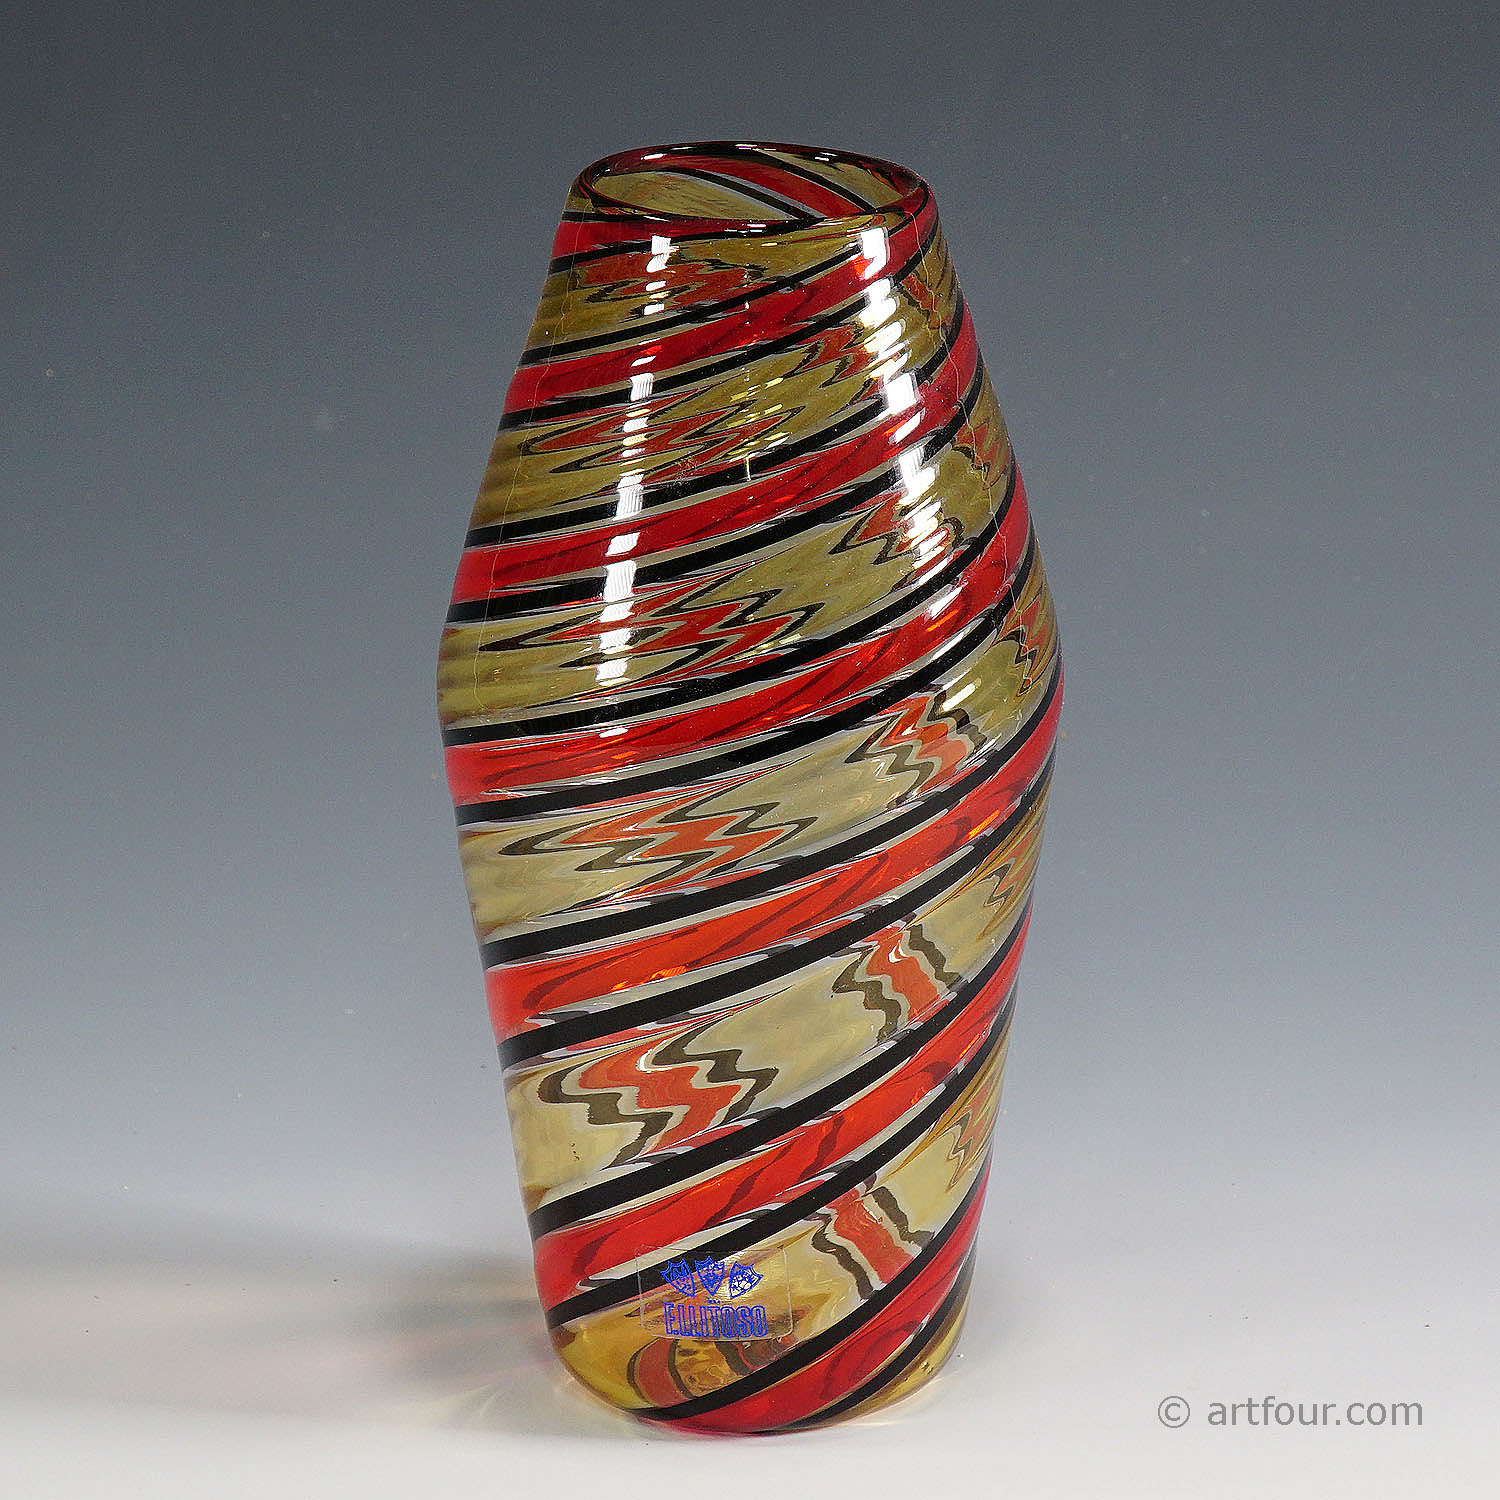 fratelli toso 'a canne' vase in red, yellow and black, murano, italy ca. 1965